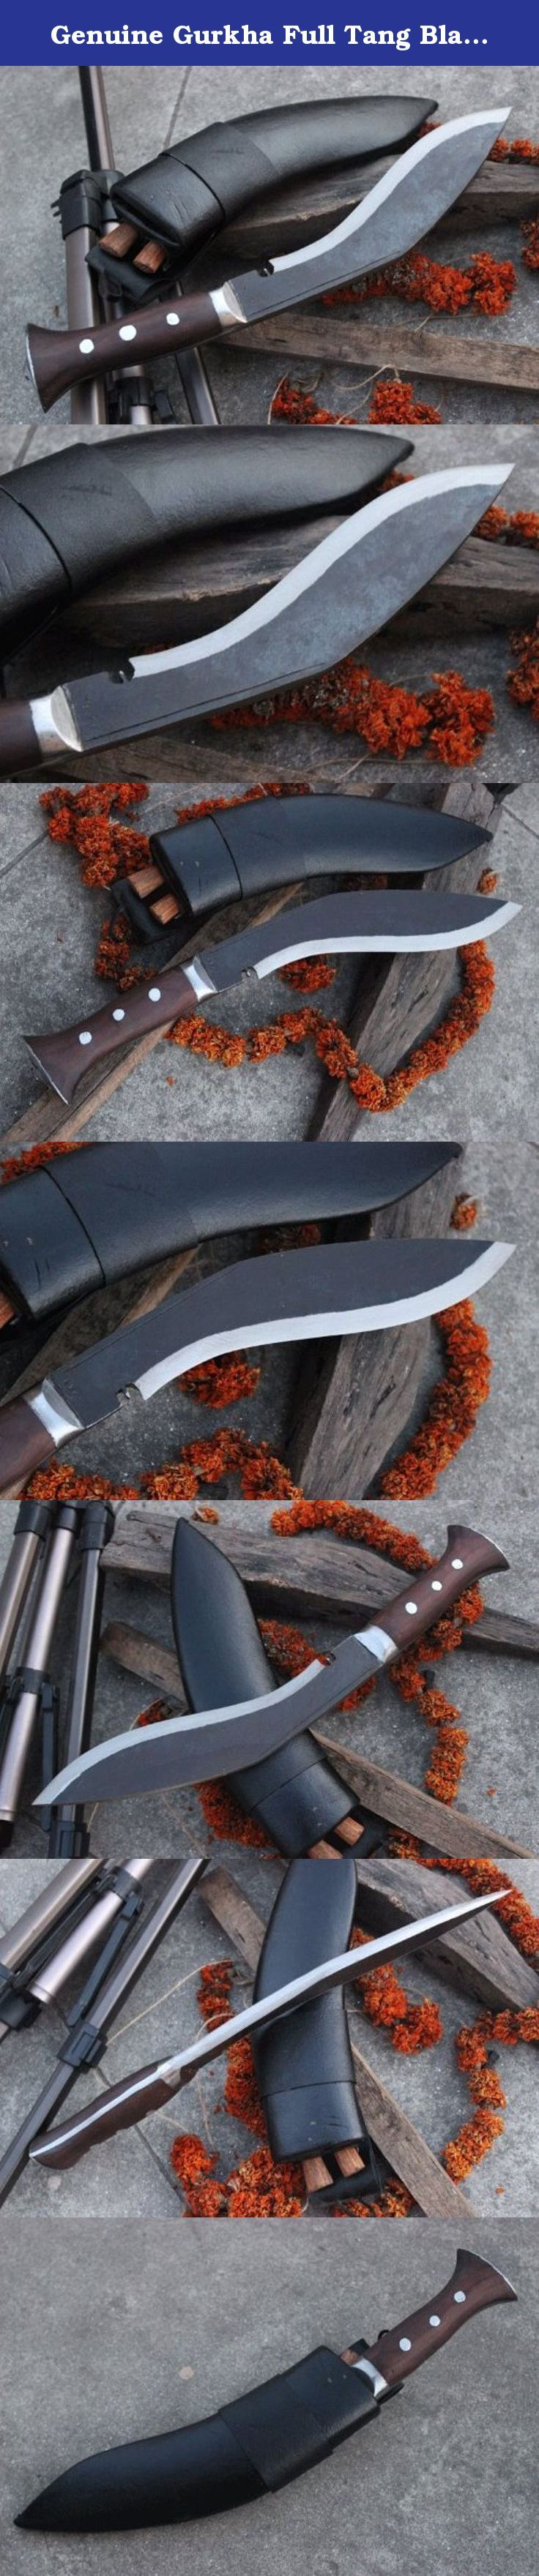 "Genuine Gurkha Full Tang Blade Rust Free Kukri Knife - 10"" Blade Panawal Angkhola Village Farmer Kukri - Handmade By Ex Gurkha Khukuri House in Nepal. 10"" Rust Free Blade Panawal Angkhola Farmer Khukuri Full Tang Handle Kukri. Ang + khola are two different words that take two different meaning. Angkhola is a popular village from eastern side of Nepal. The handle of the khukuri from this village is always single piece that goes all the way through bottom of the blade. Ang means the back…"